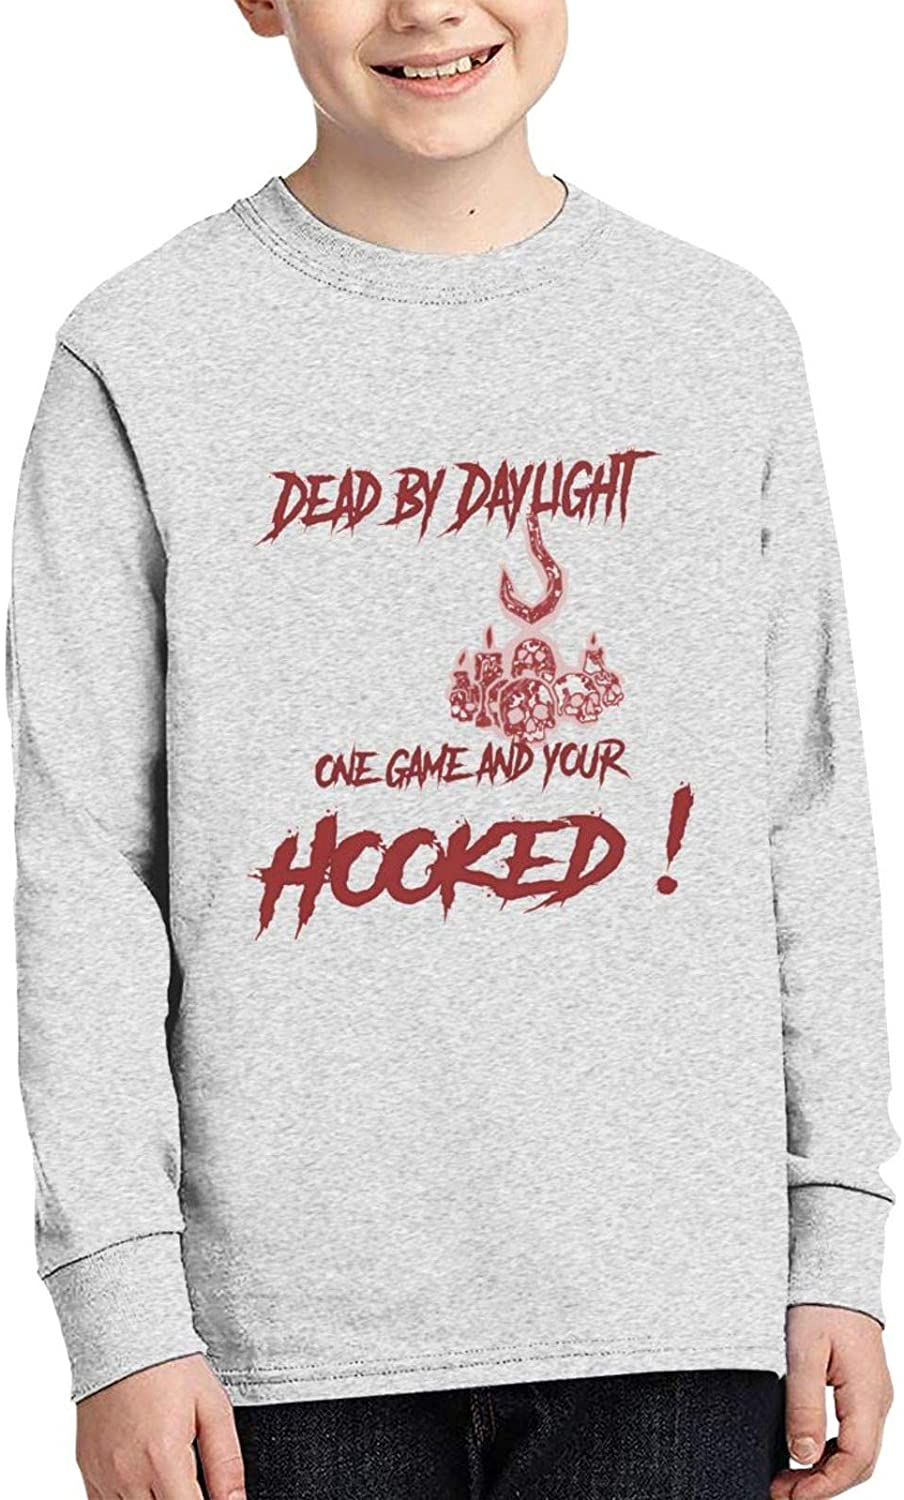 Dead B_Y Day_Light Casual Junior Round Neck Long Sleeve Lightweight Long Sleeve T Shirt